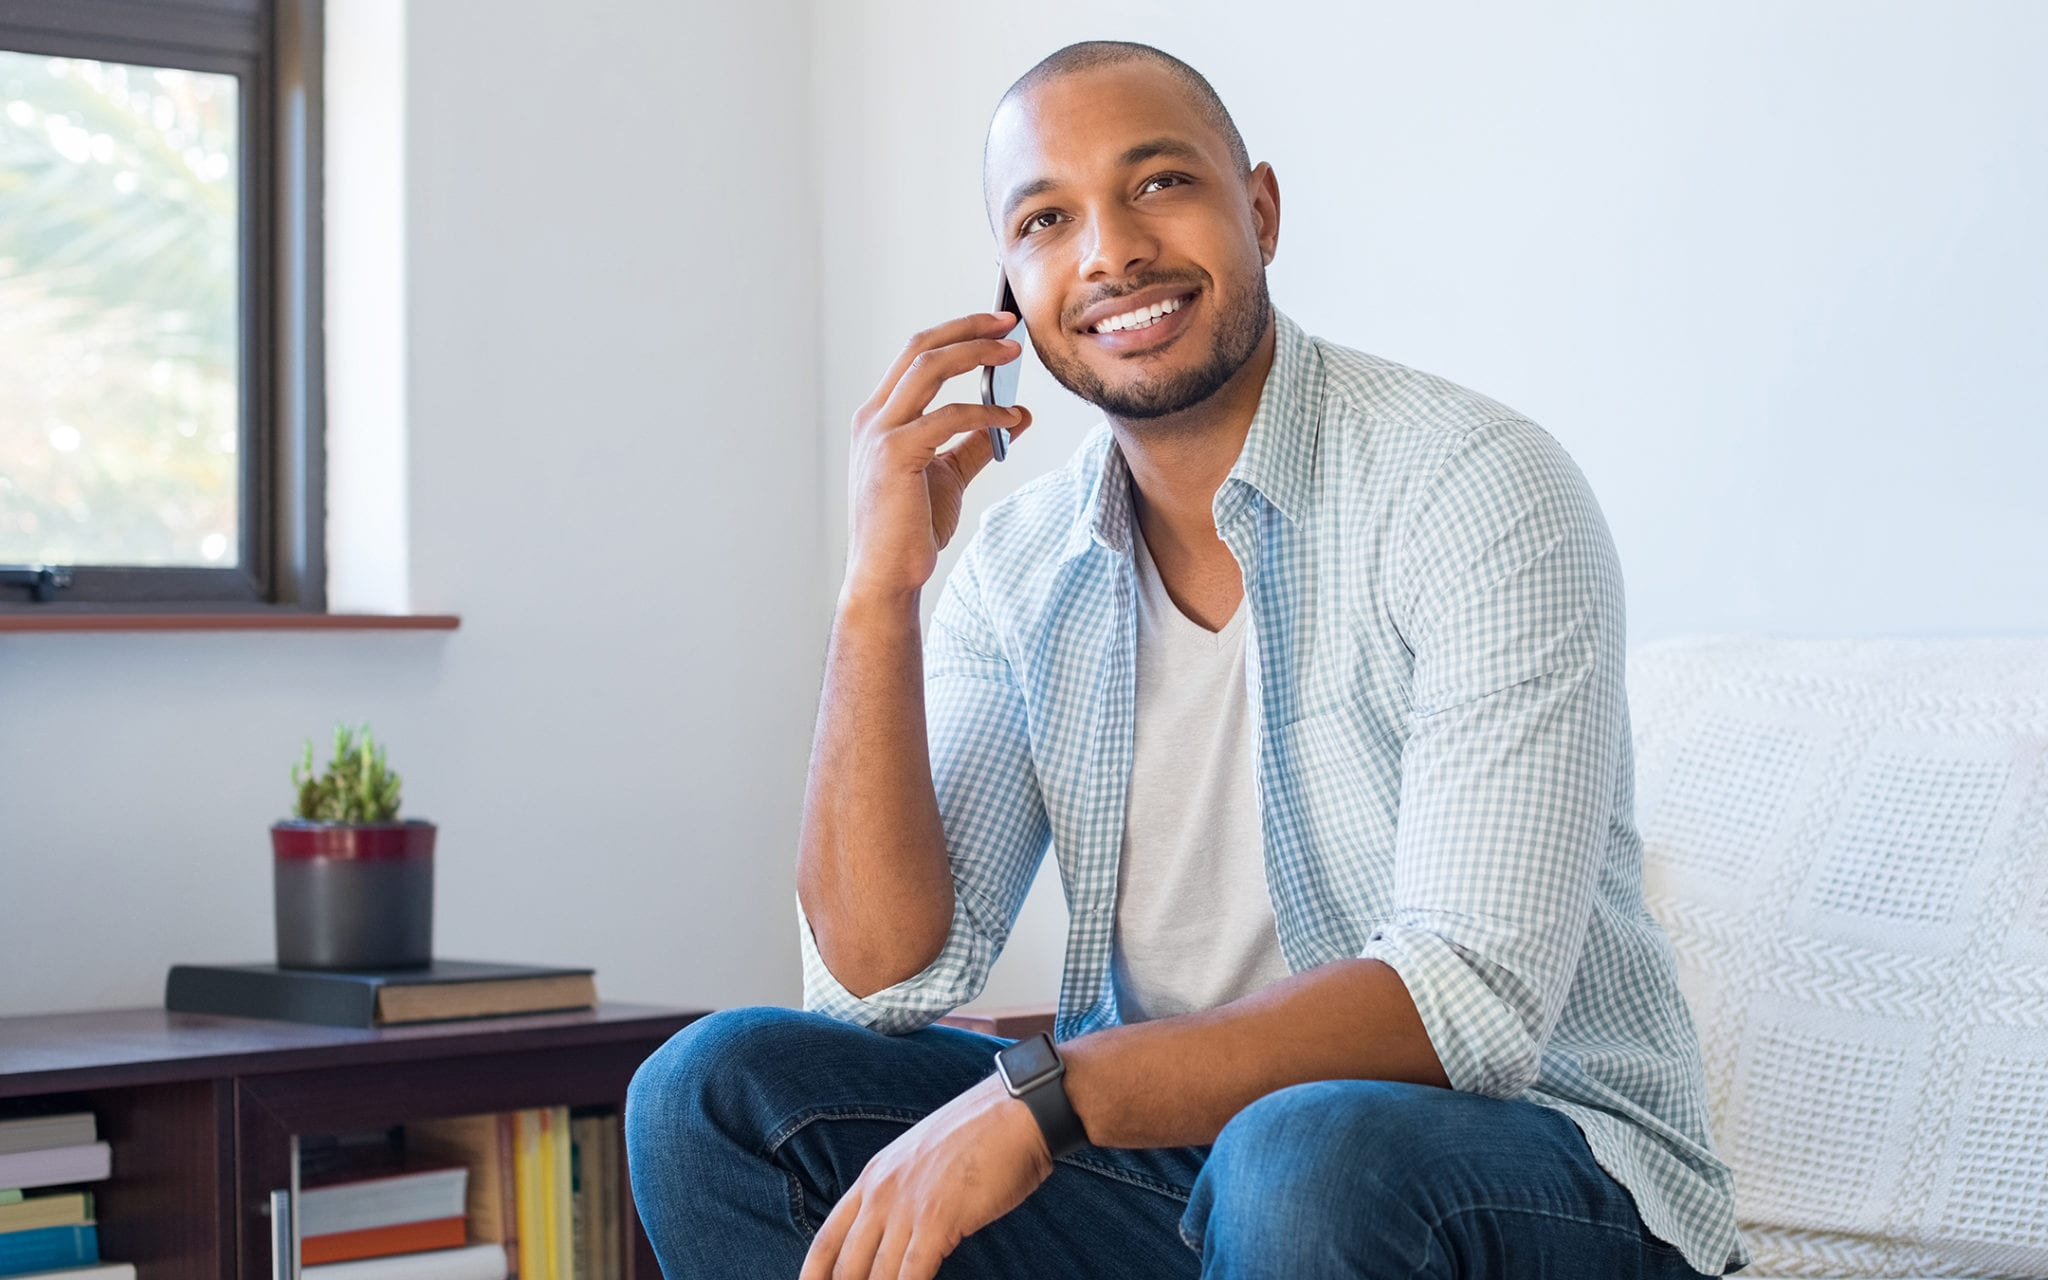 Young man smiling, using his mobile phone